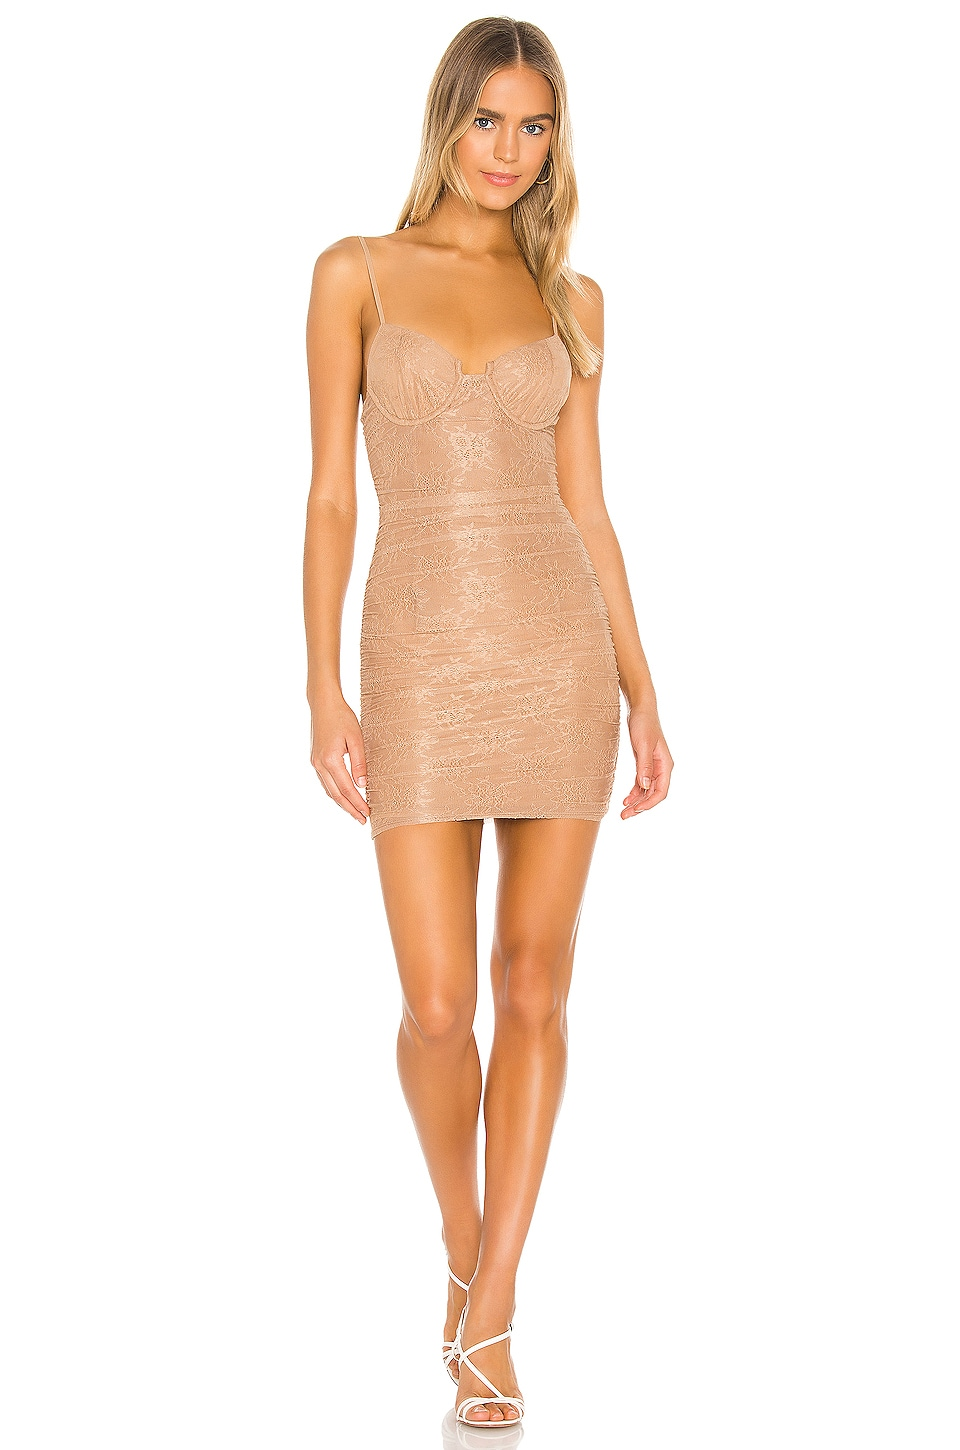 Sierra Mini Dress             Camila Coelho                                                                                                       CA$ 259.13 13